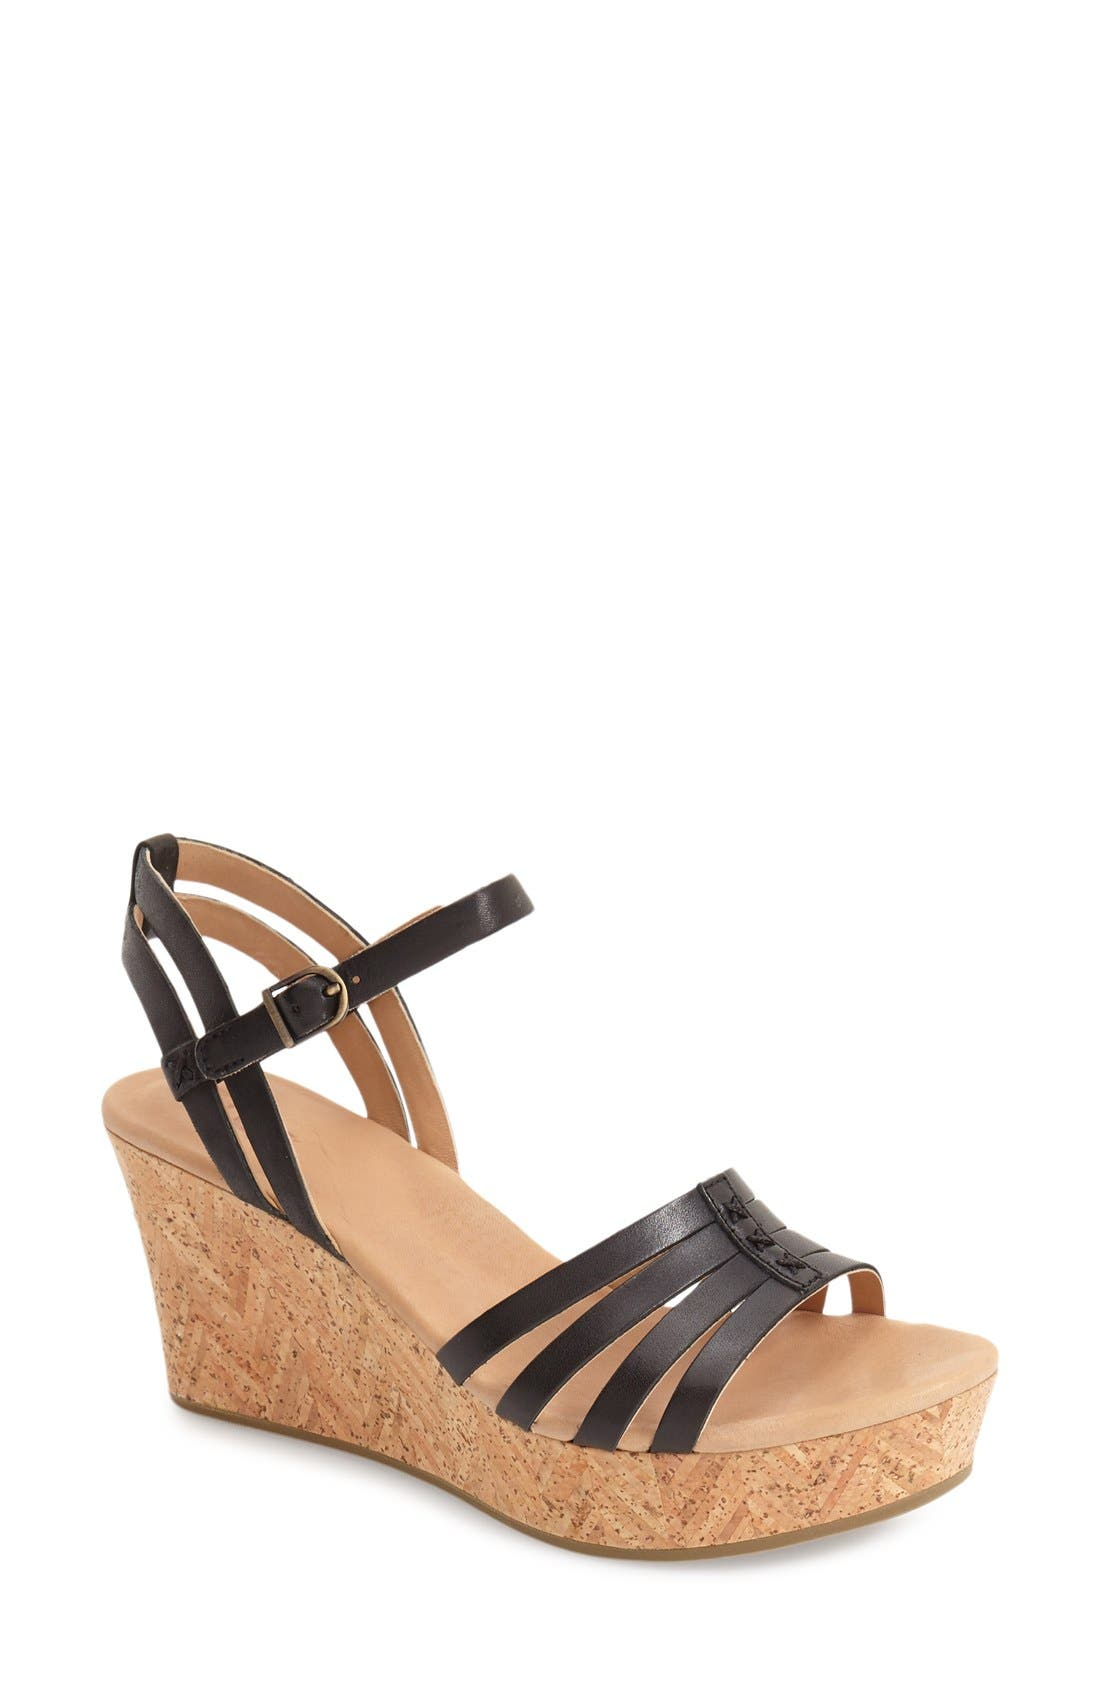 Main Image - UGG® 'Brigitte' Wedge Sandal (Women)